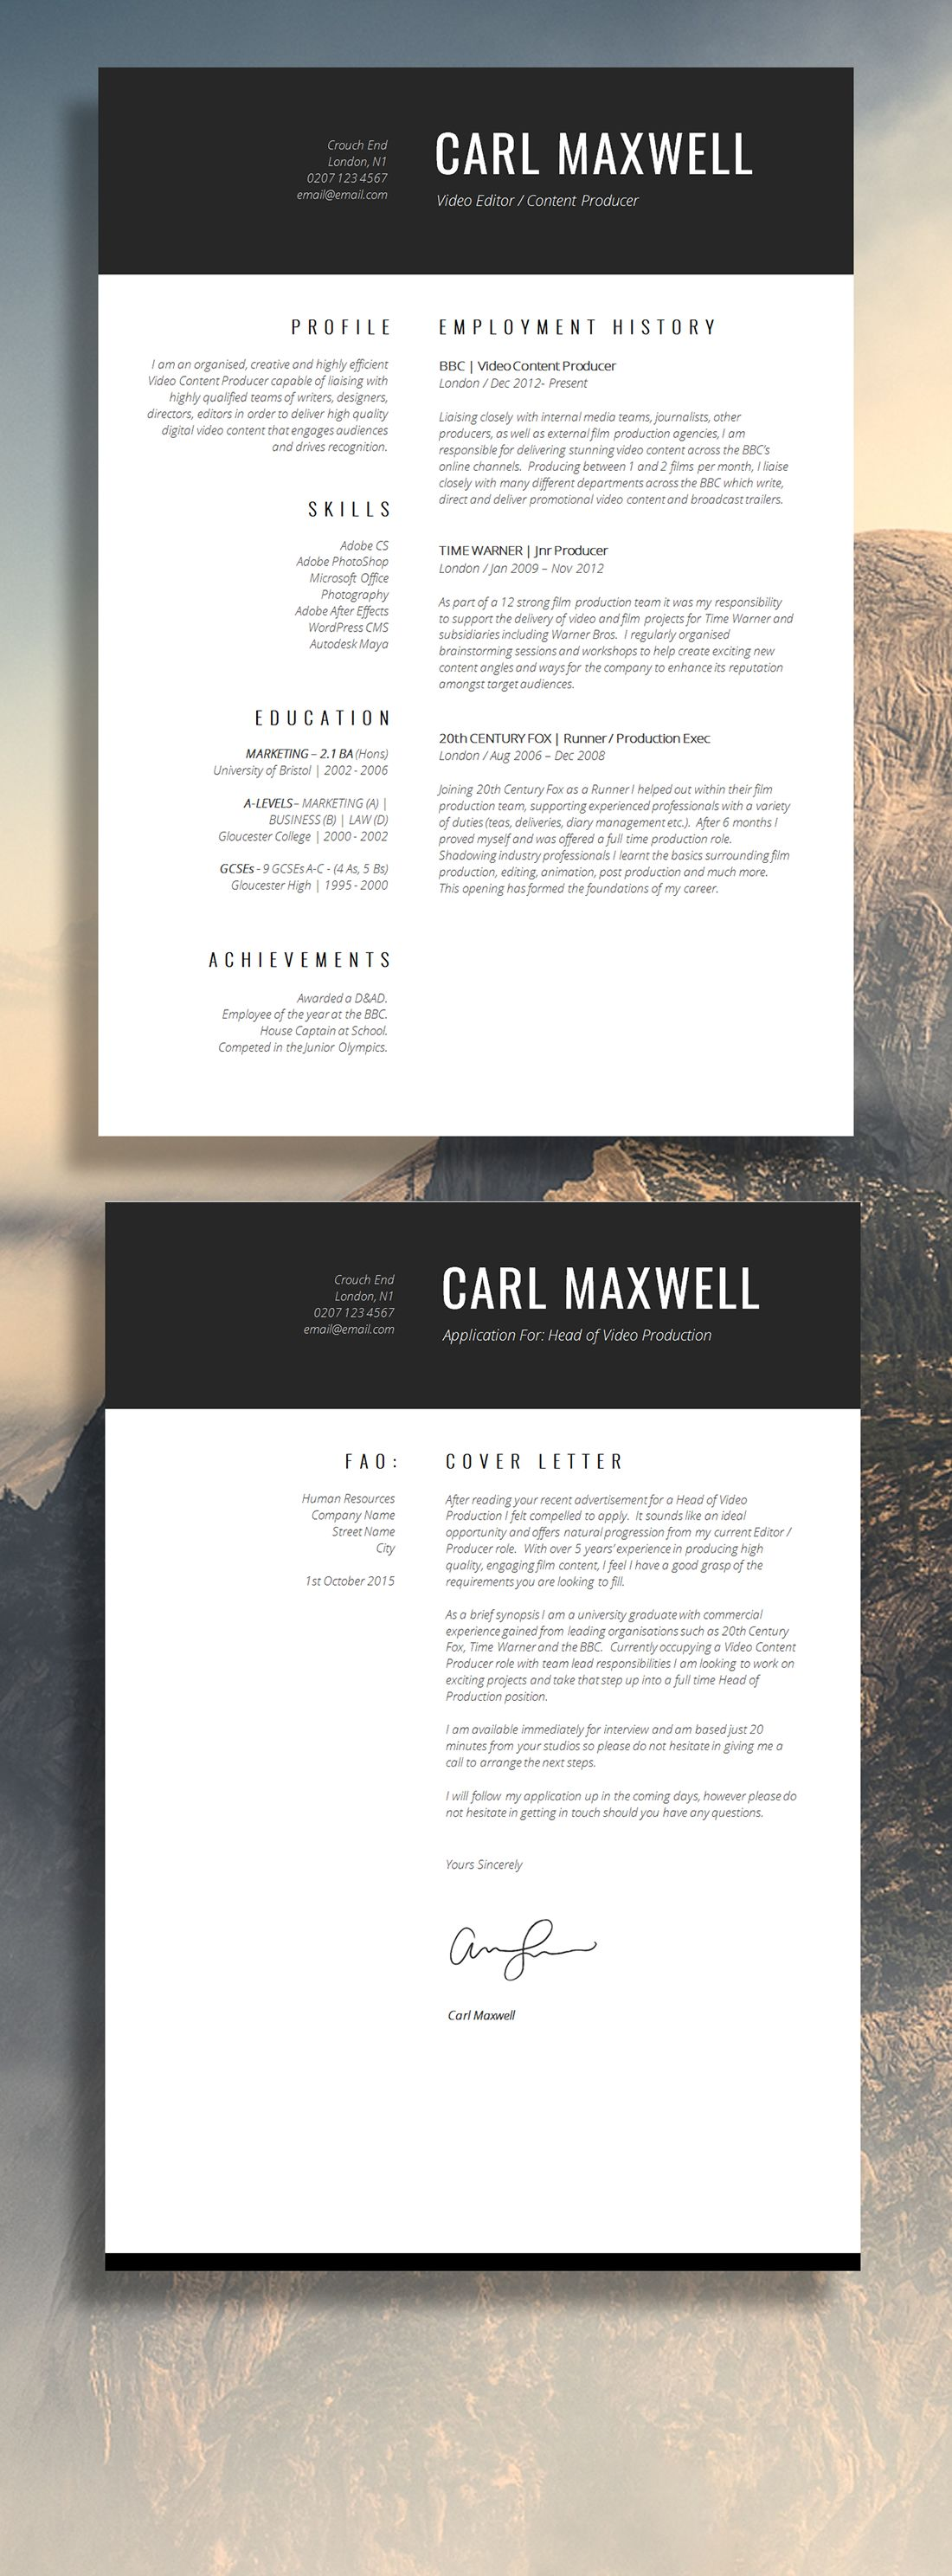 Single Page CV Template | RESUME TEMPLATES | Pinterest | Bewerbung ...